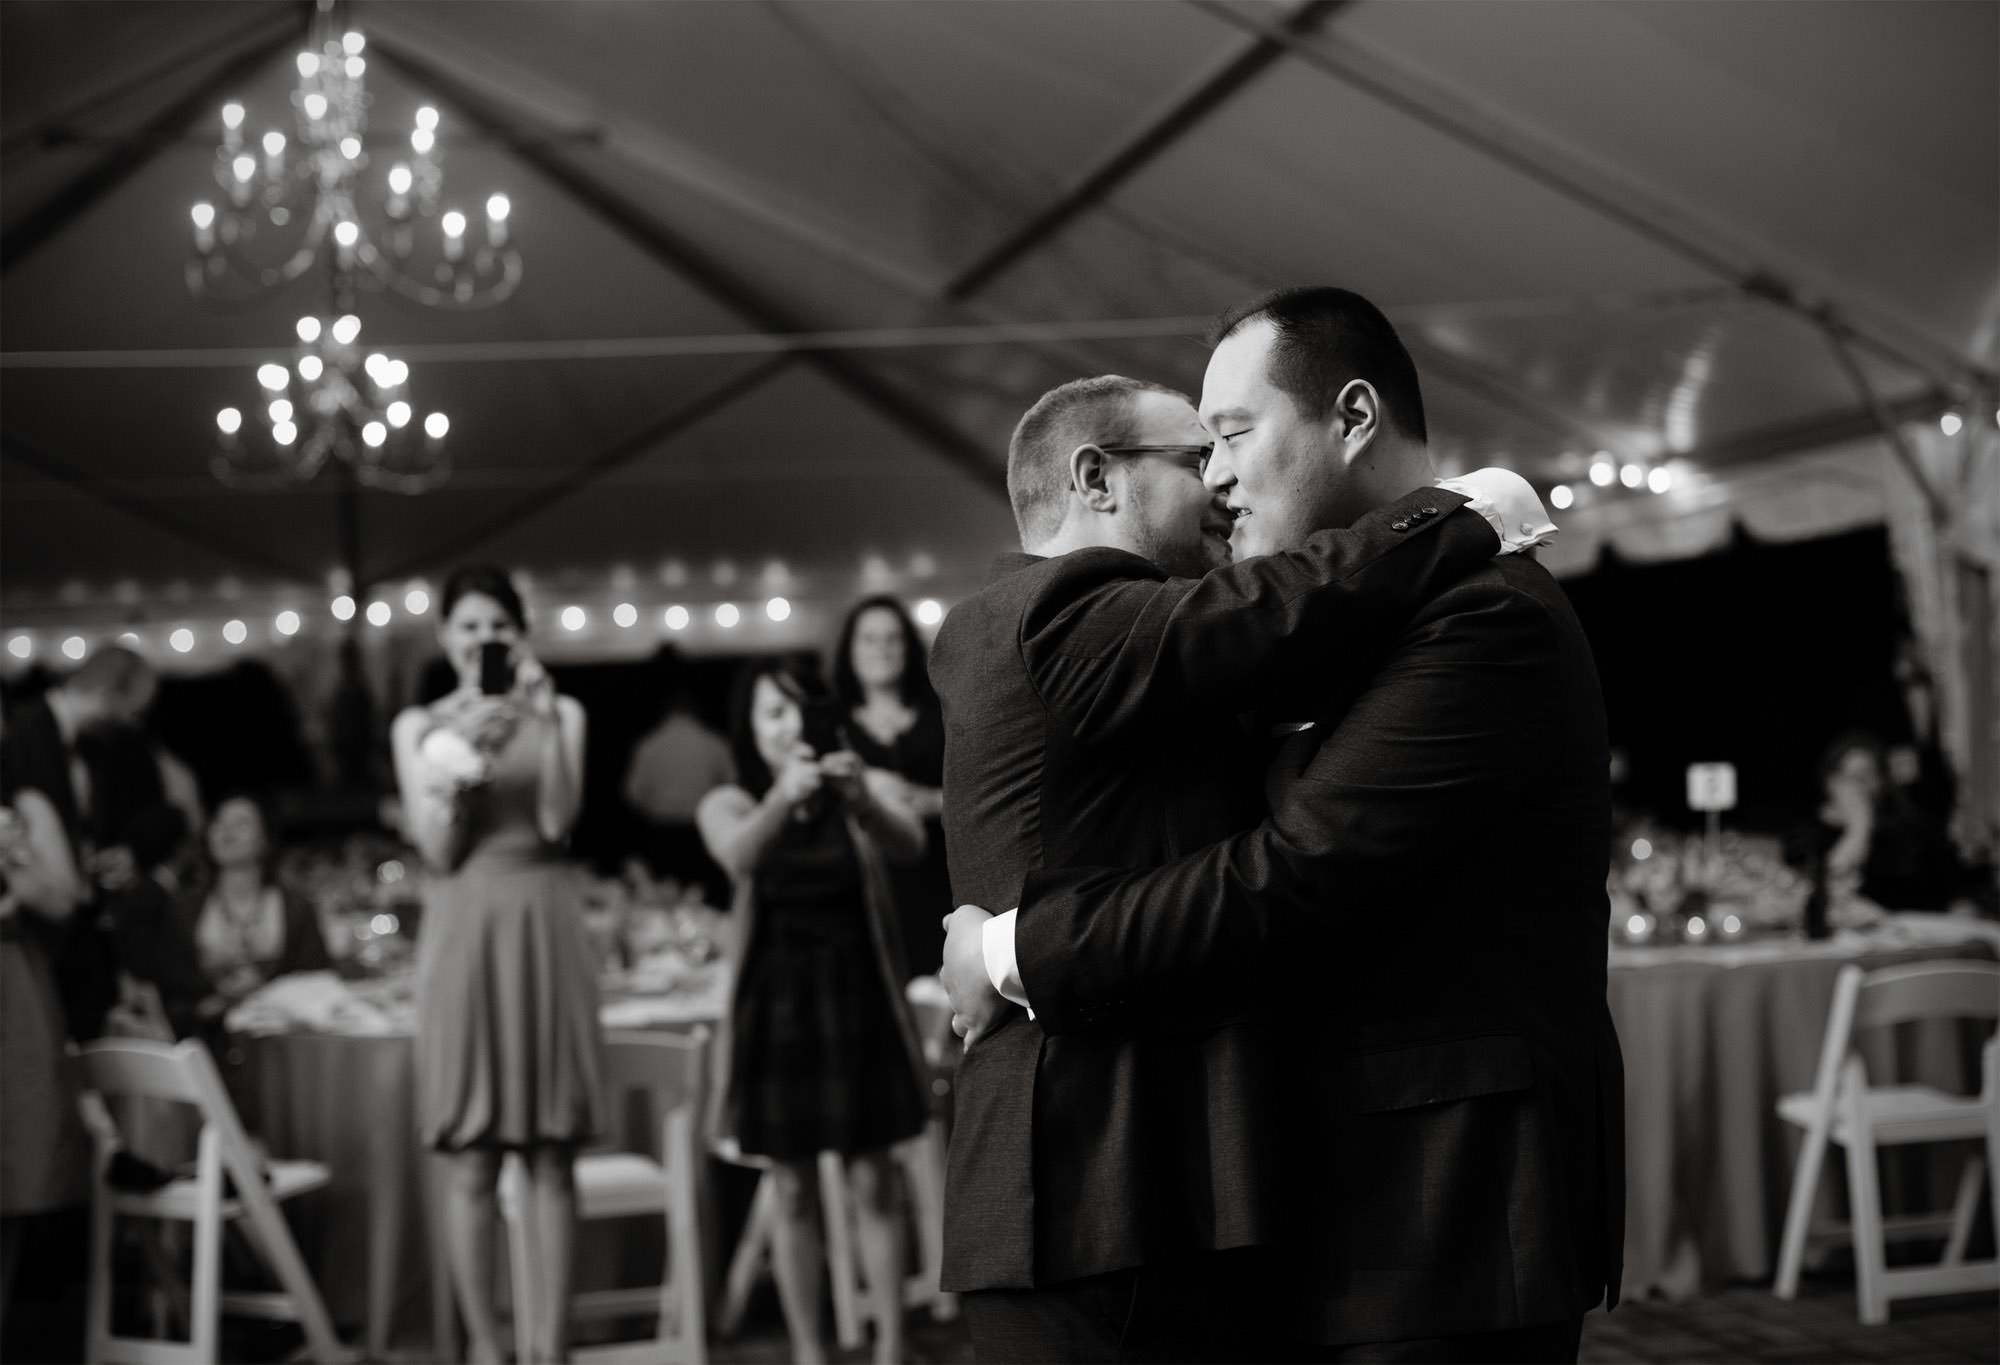 The couple dances for the first time during the wedding reception at Oxon Hill Manor.